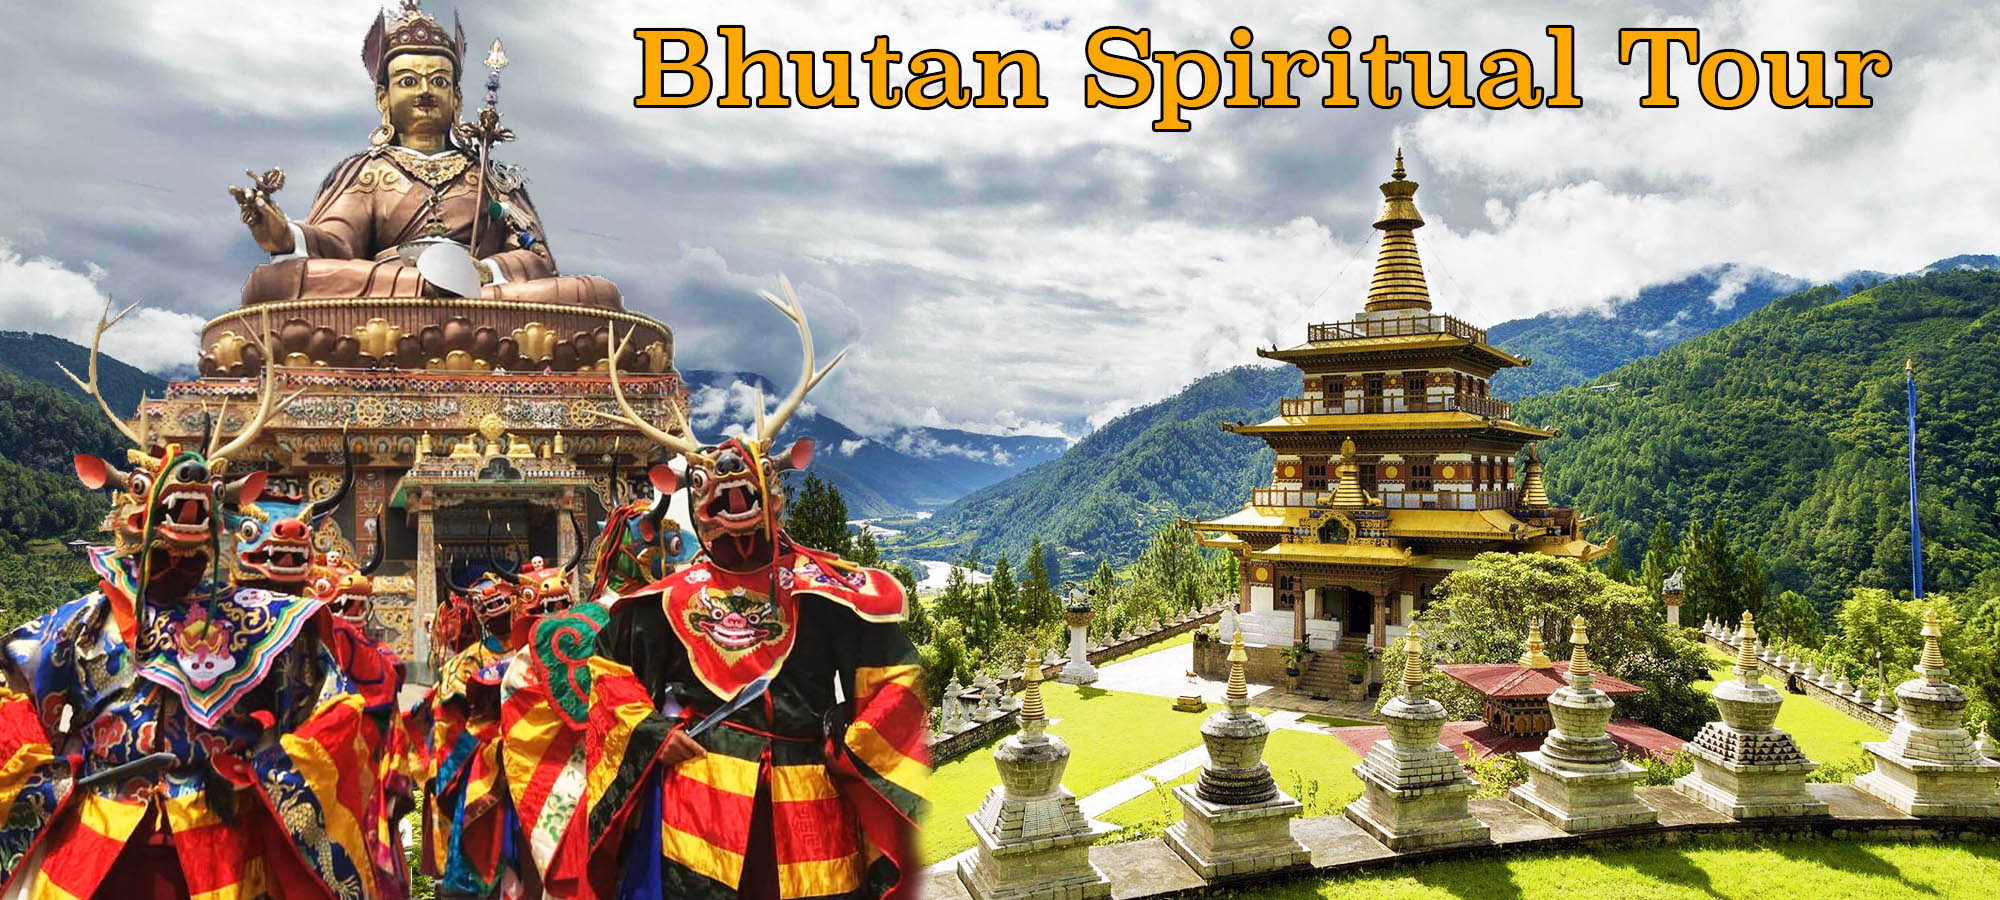 State religion of Bhutan is Buddhism